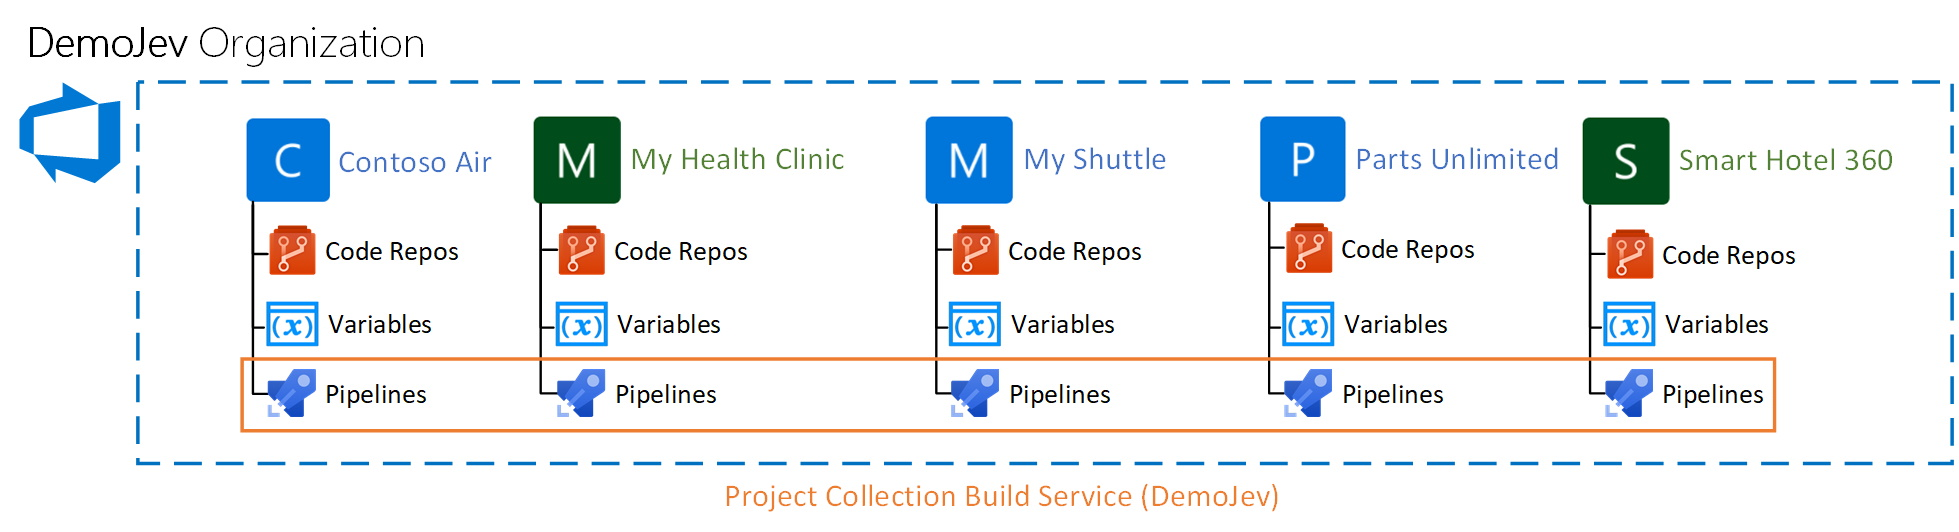 project_collection_service